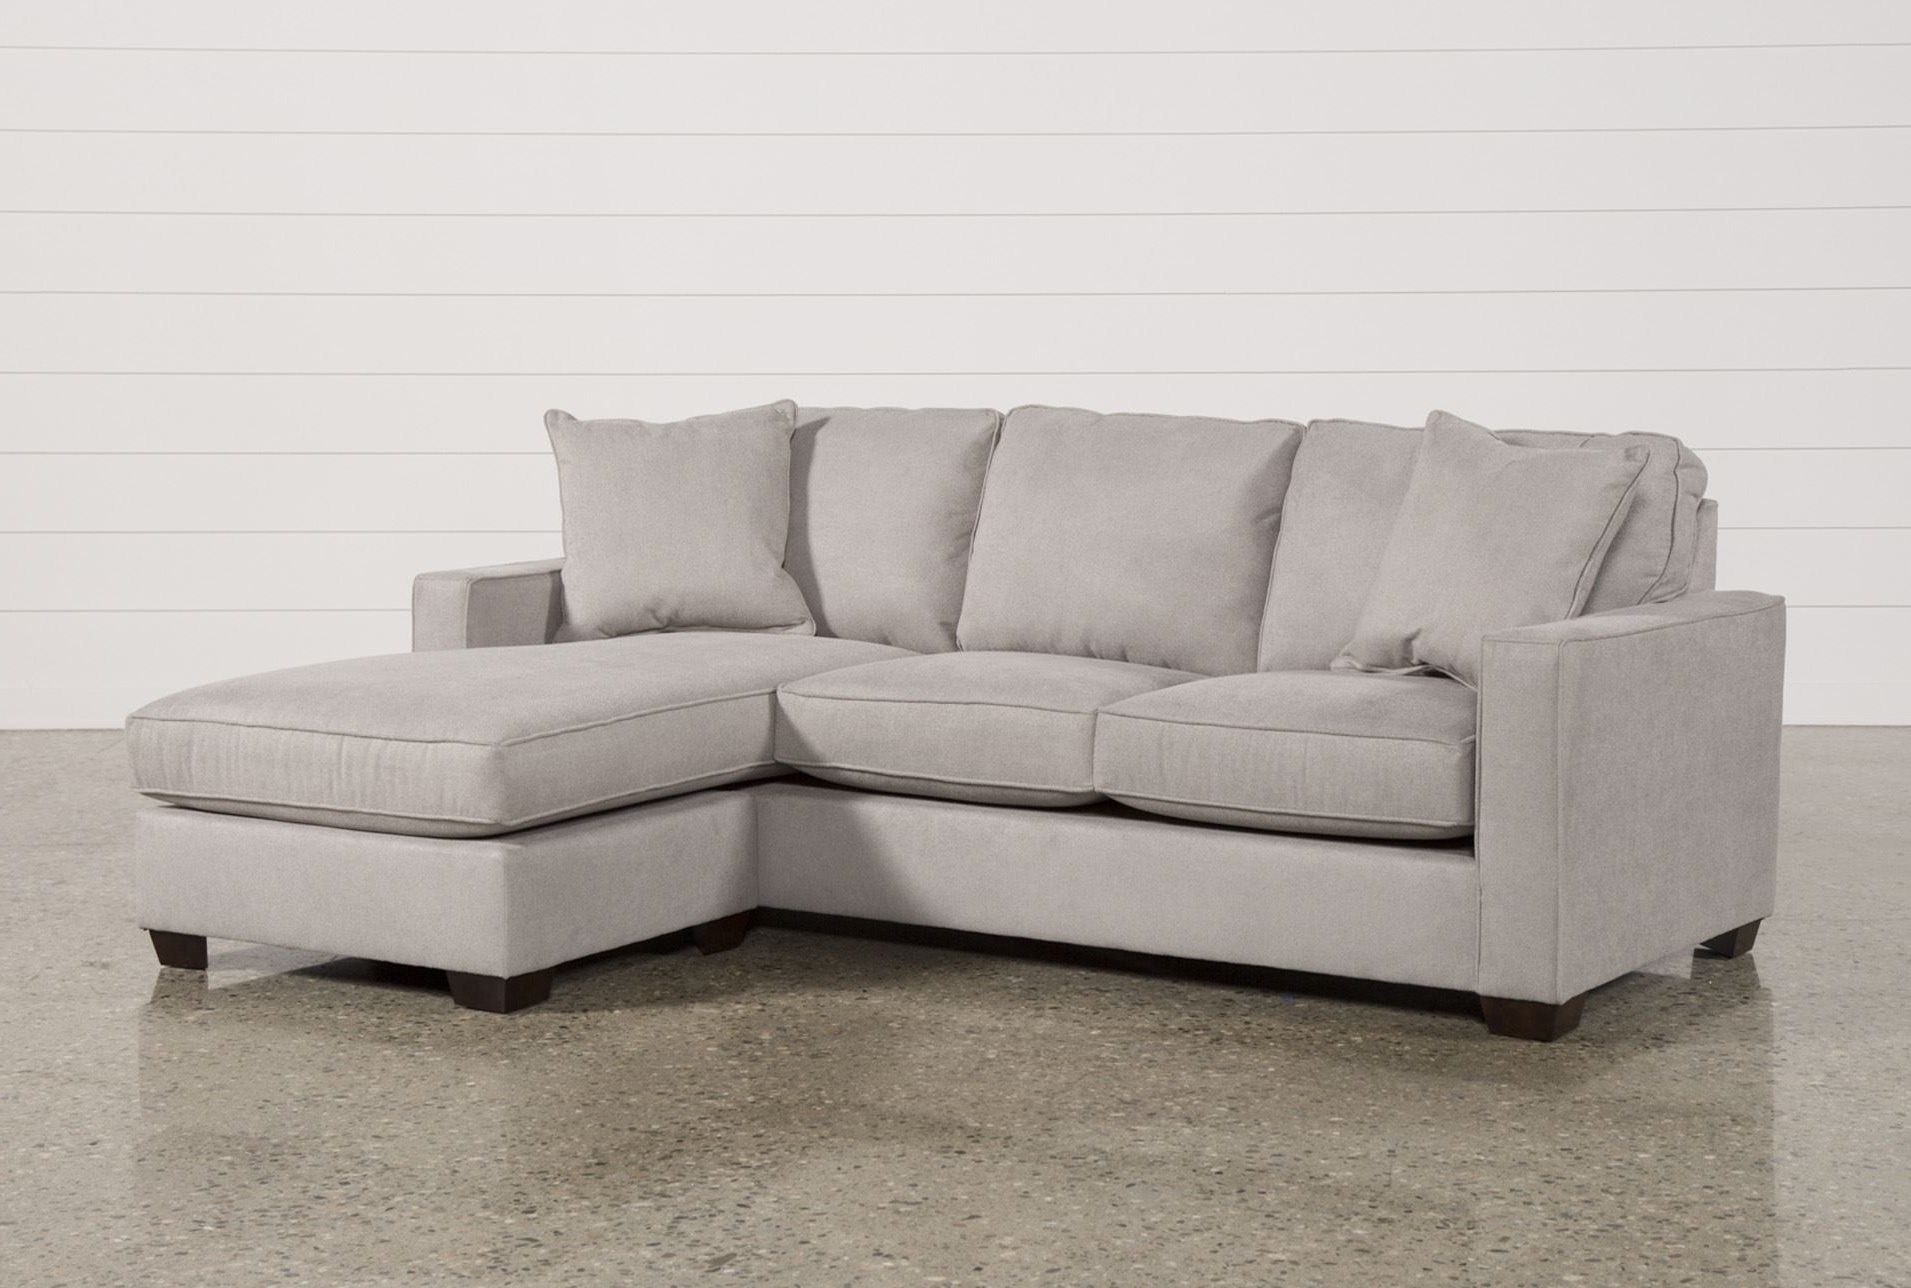 Favorite New Deep Seat Sectional Sofa 17 On Soft Sectional Sofas With Deep Pertaining To Living Spaces Sectional Sofas (View 3 of 15)